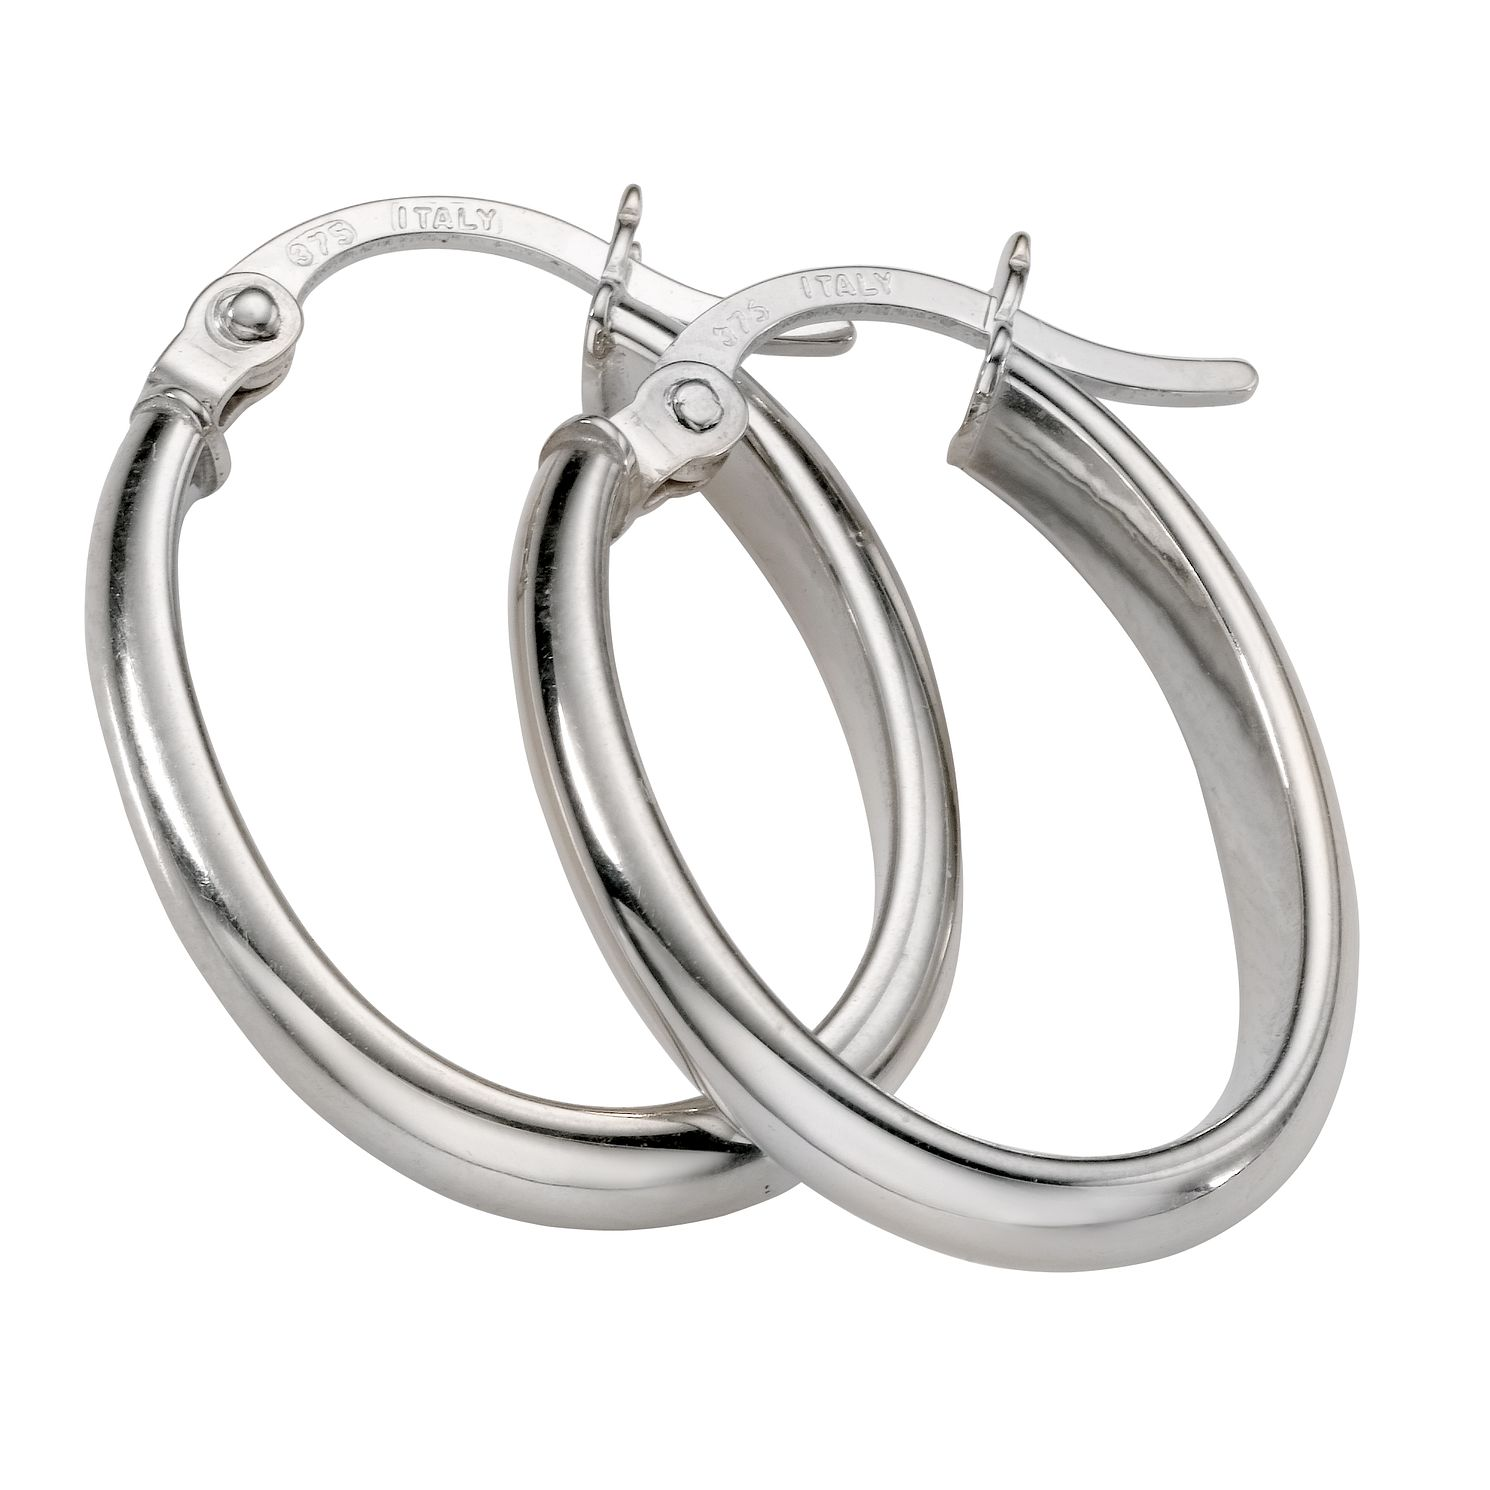 9ct White Gold Oval Creole Earrings - Product number 5343844